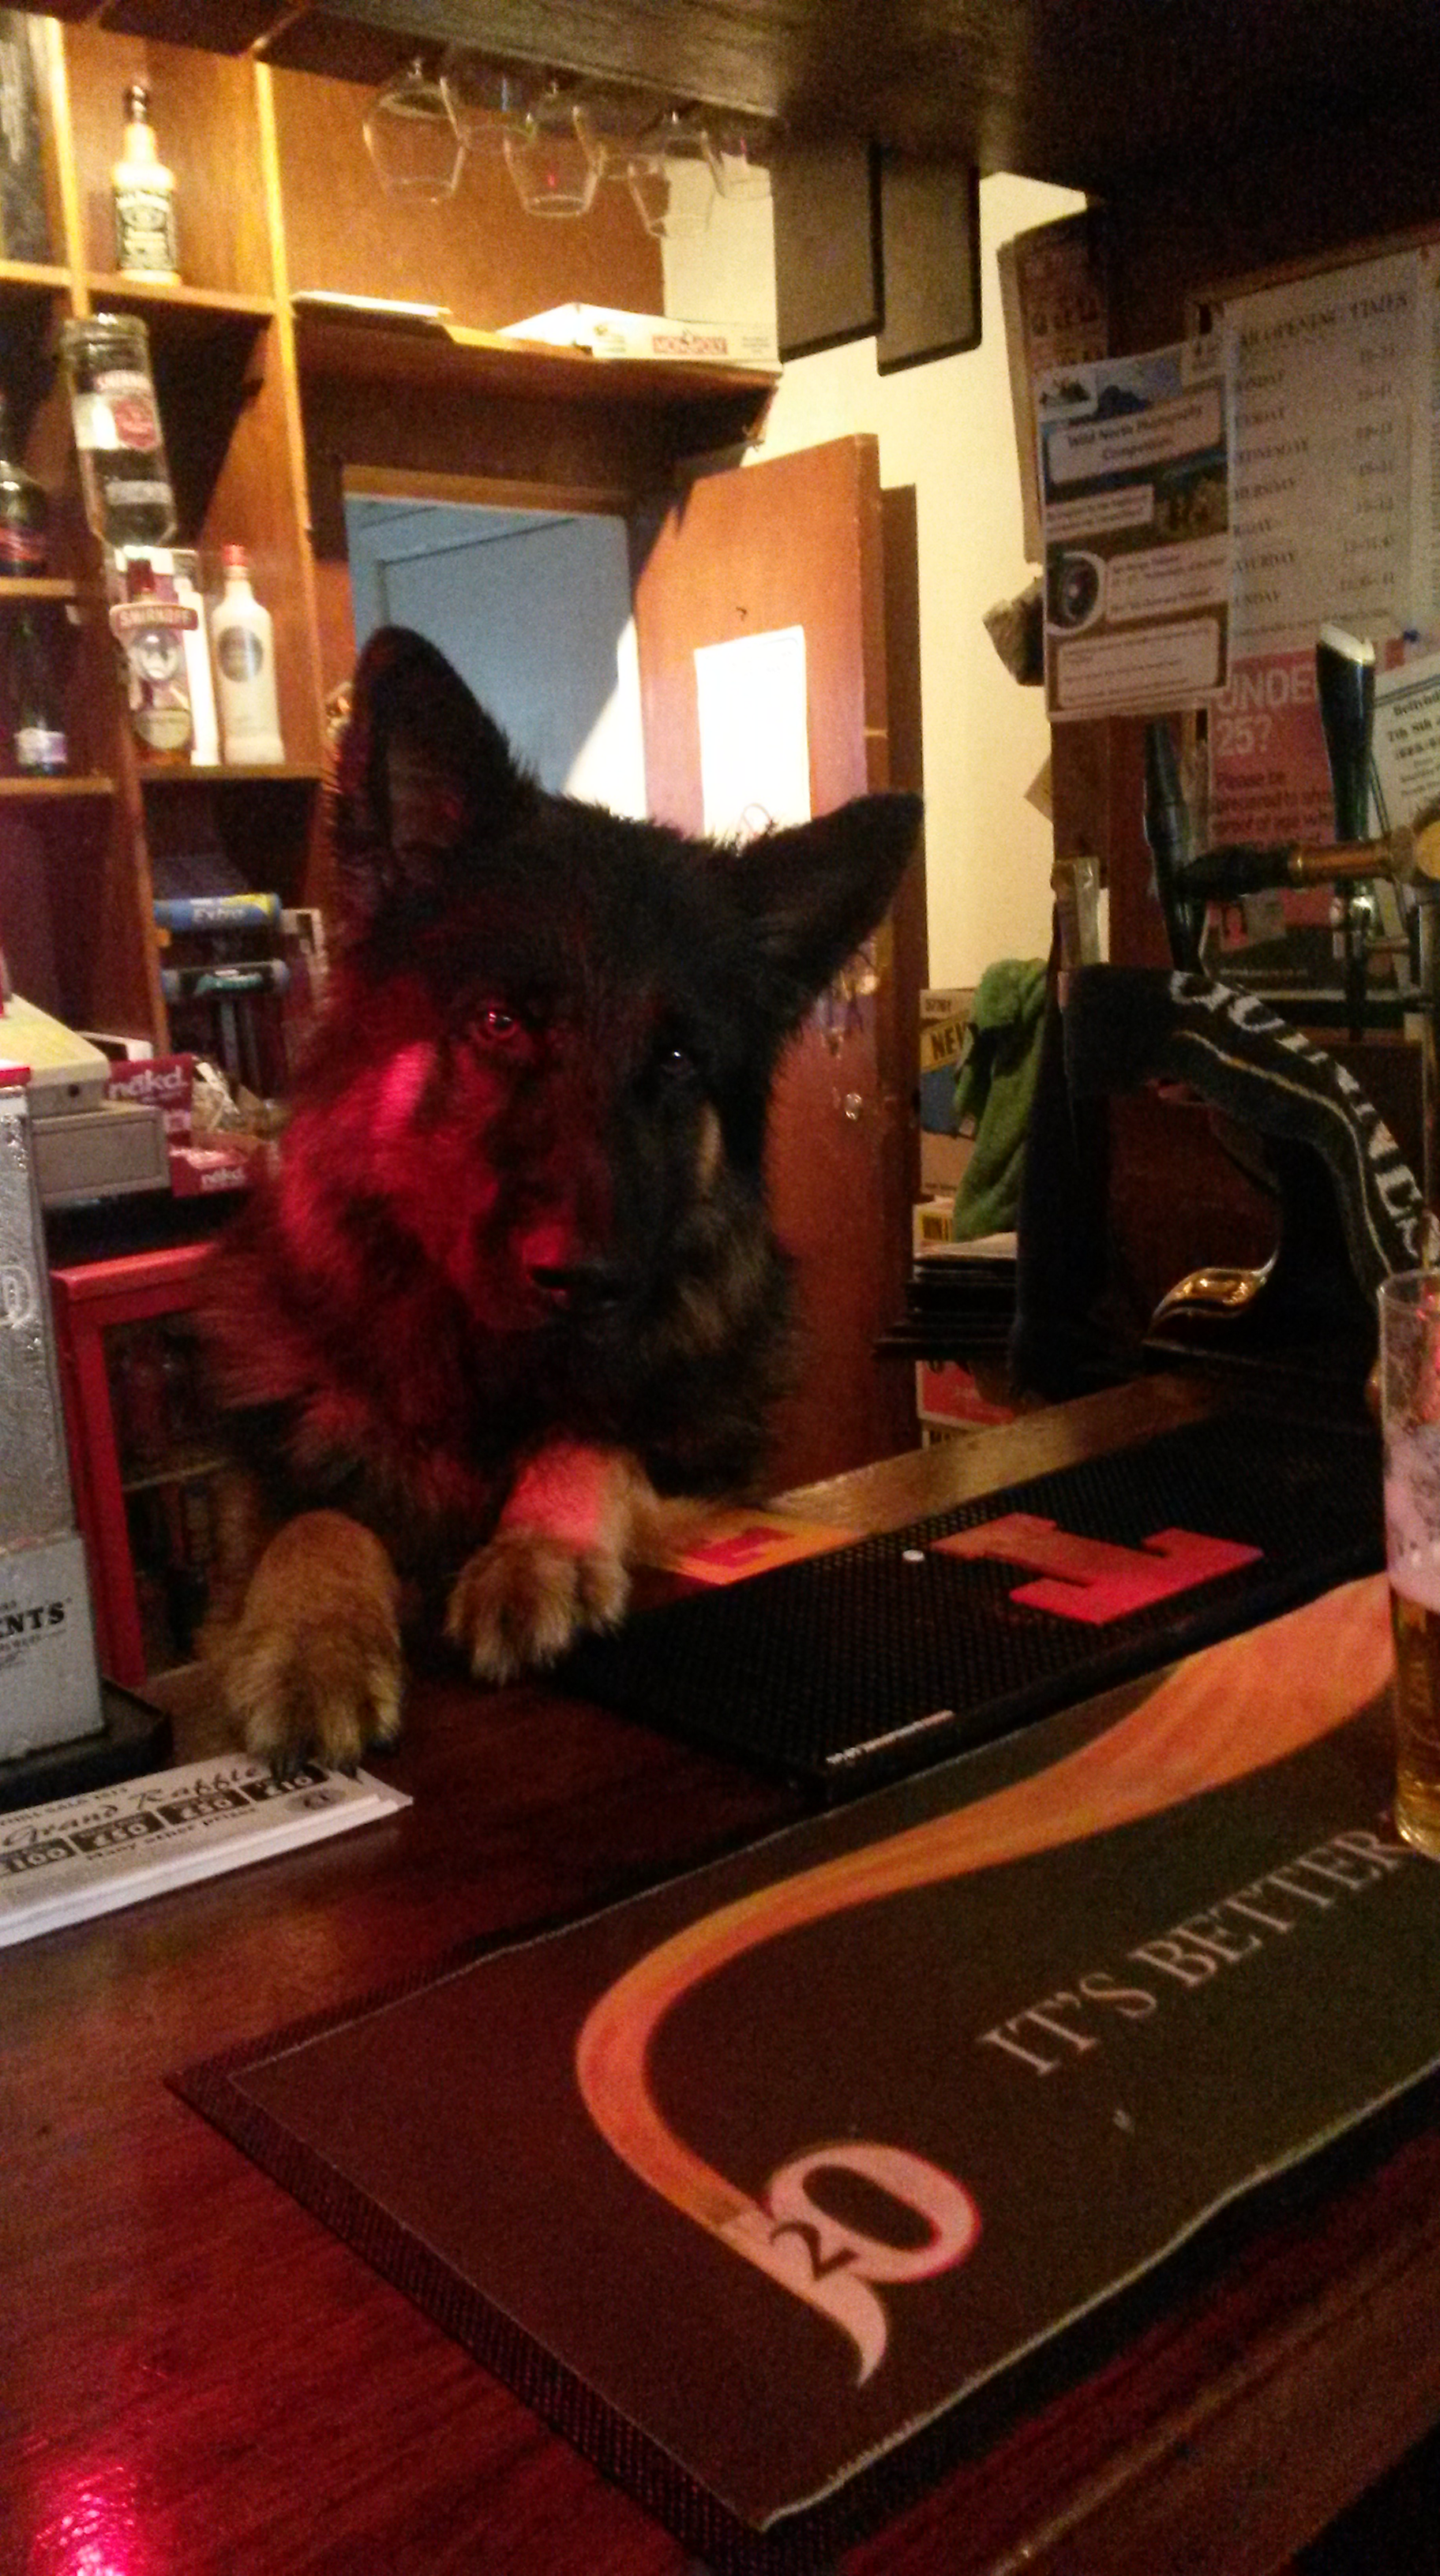 So underpopulated is the village that at the Farr Bay Inn a german shepherd sometimes serves behind the bar